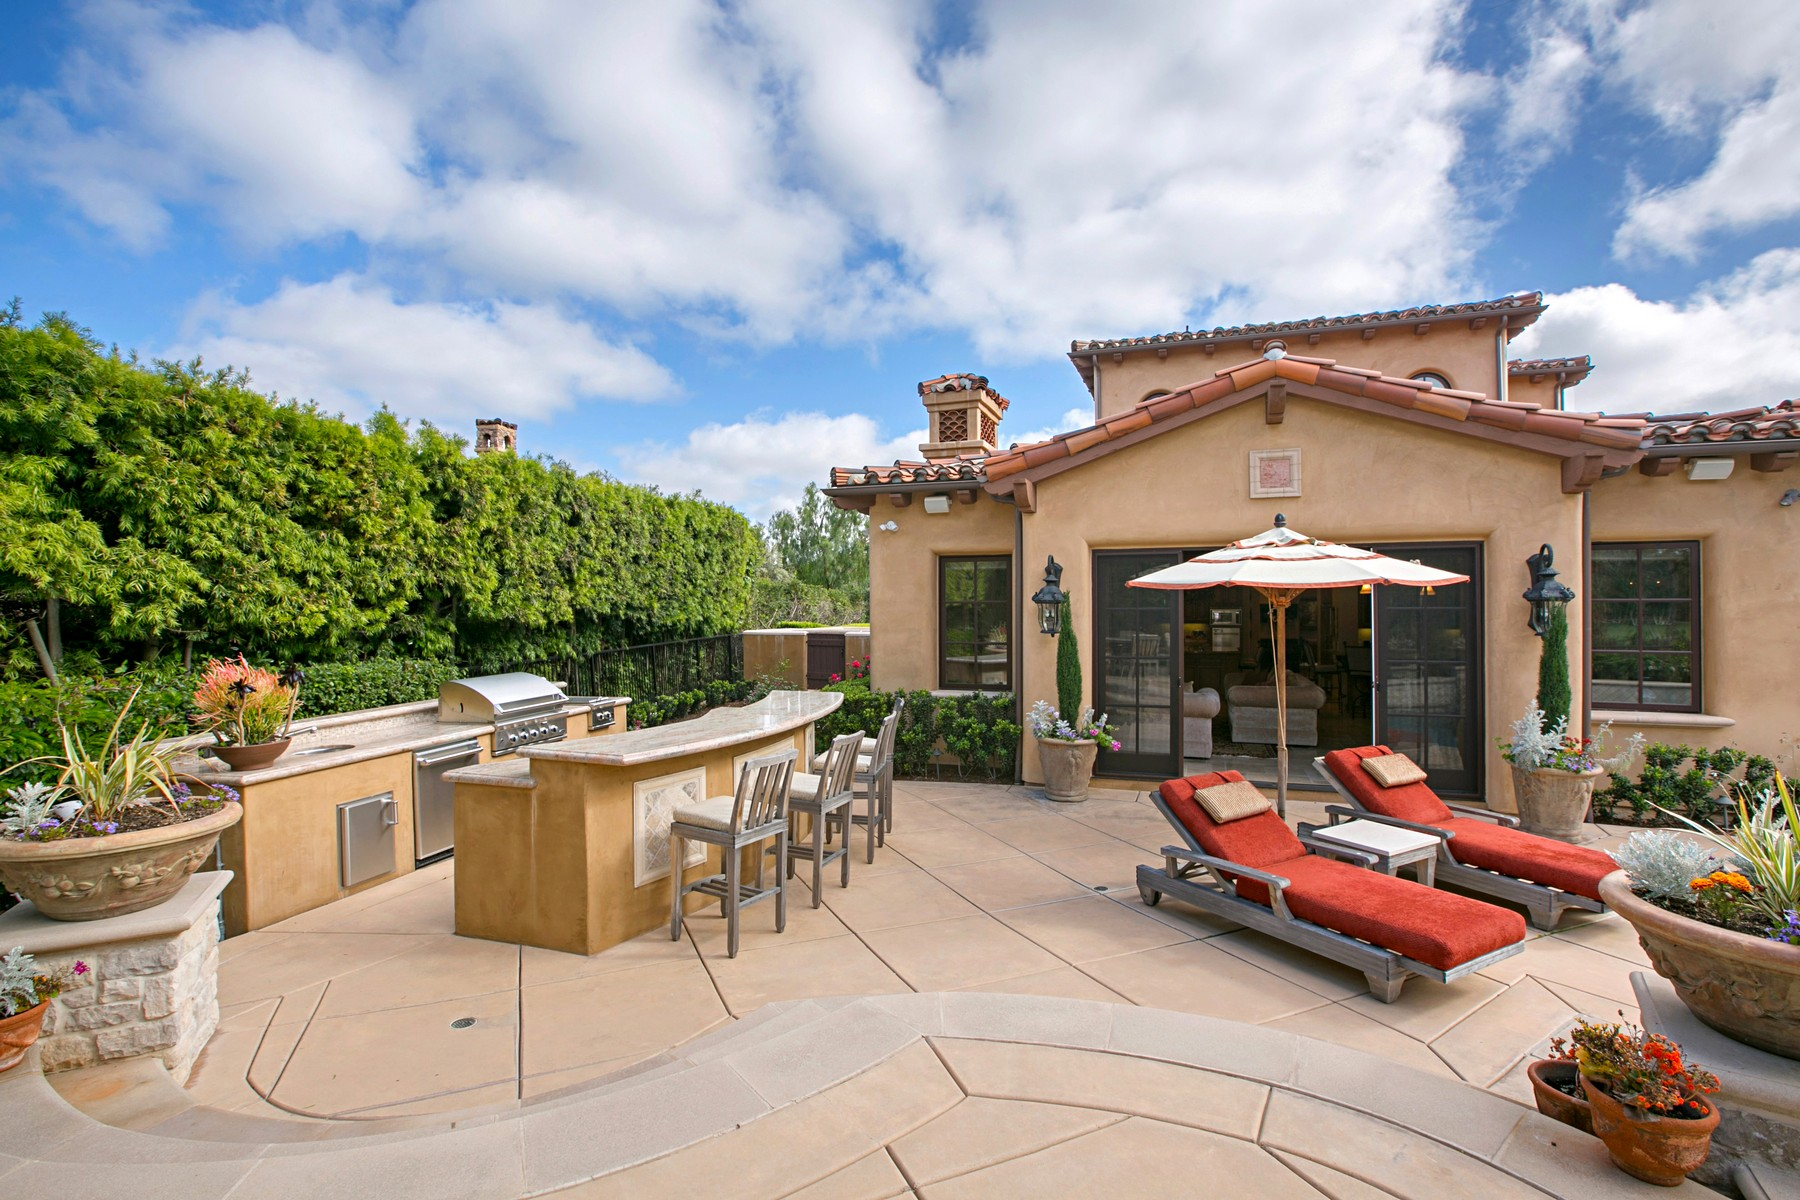 Additional photo for property listing at 18341 Calle La Serra  Rancho Santa Fe, California 92091 United States